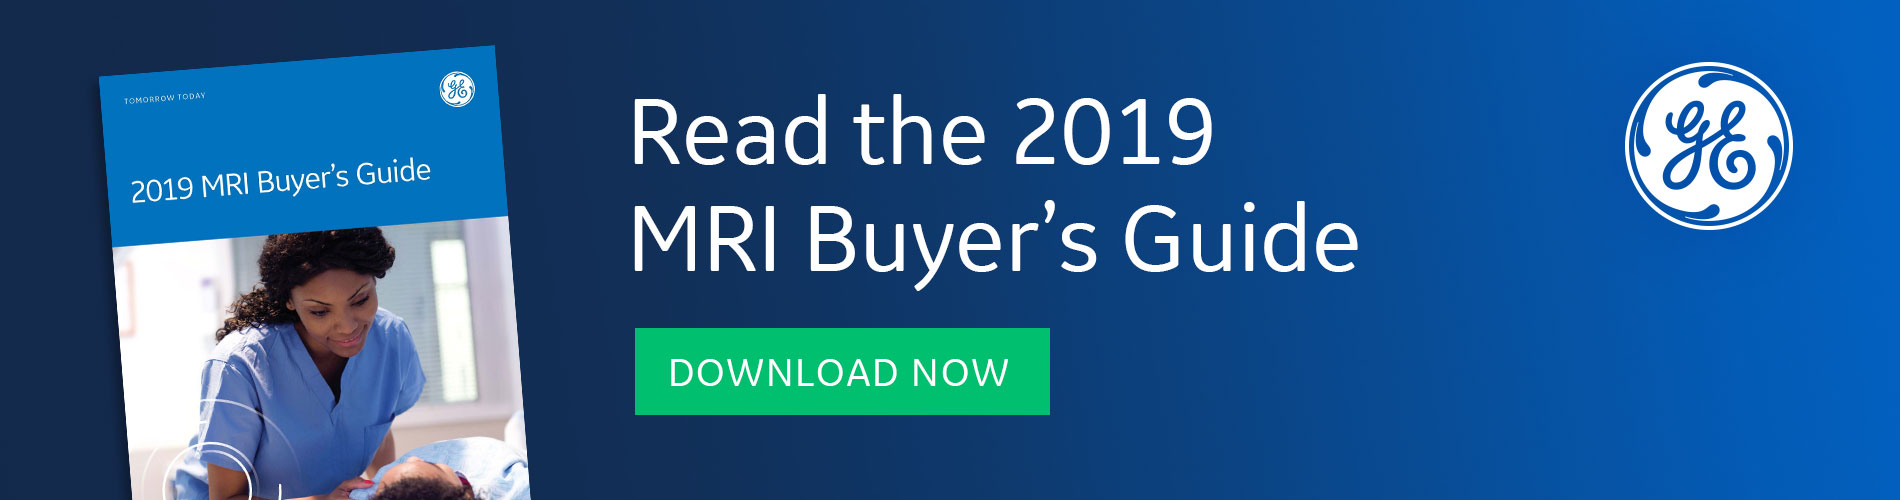 2019 Buyer's Guide Dark